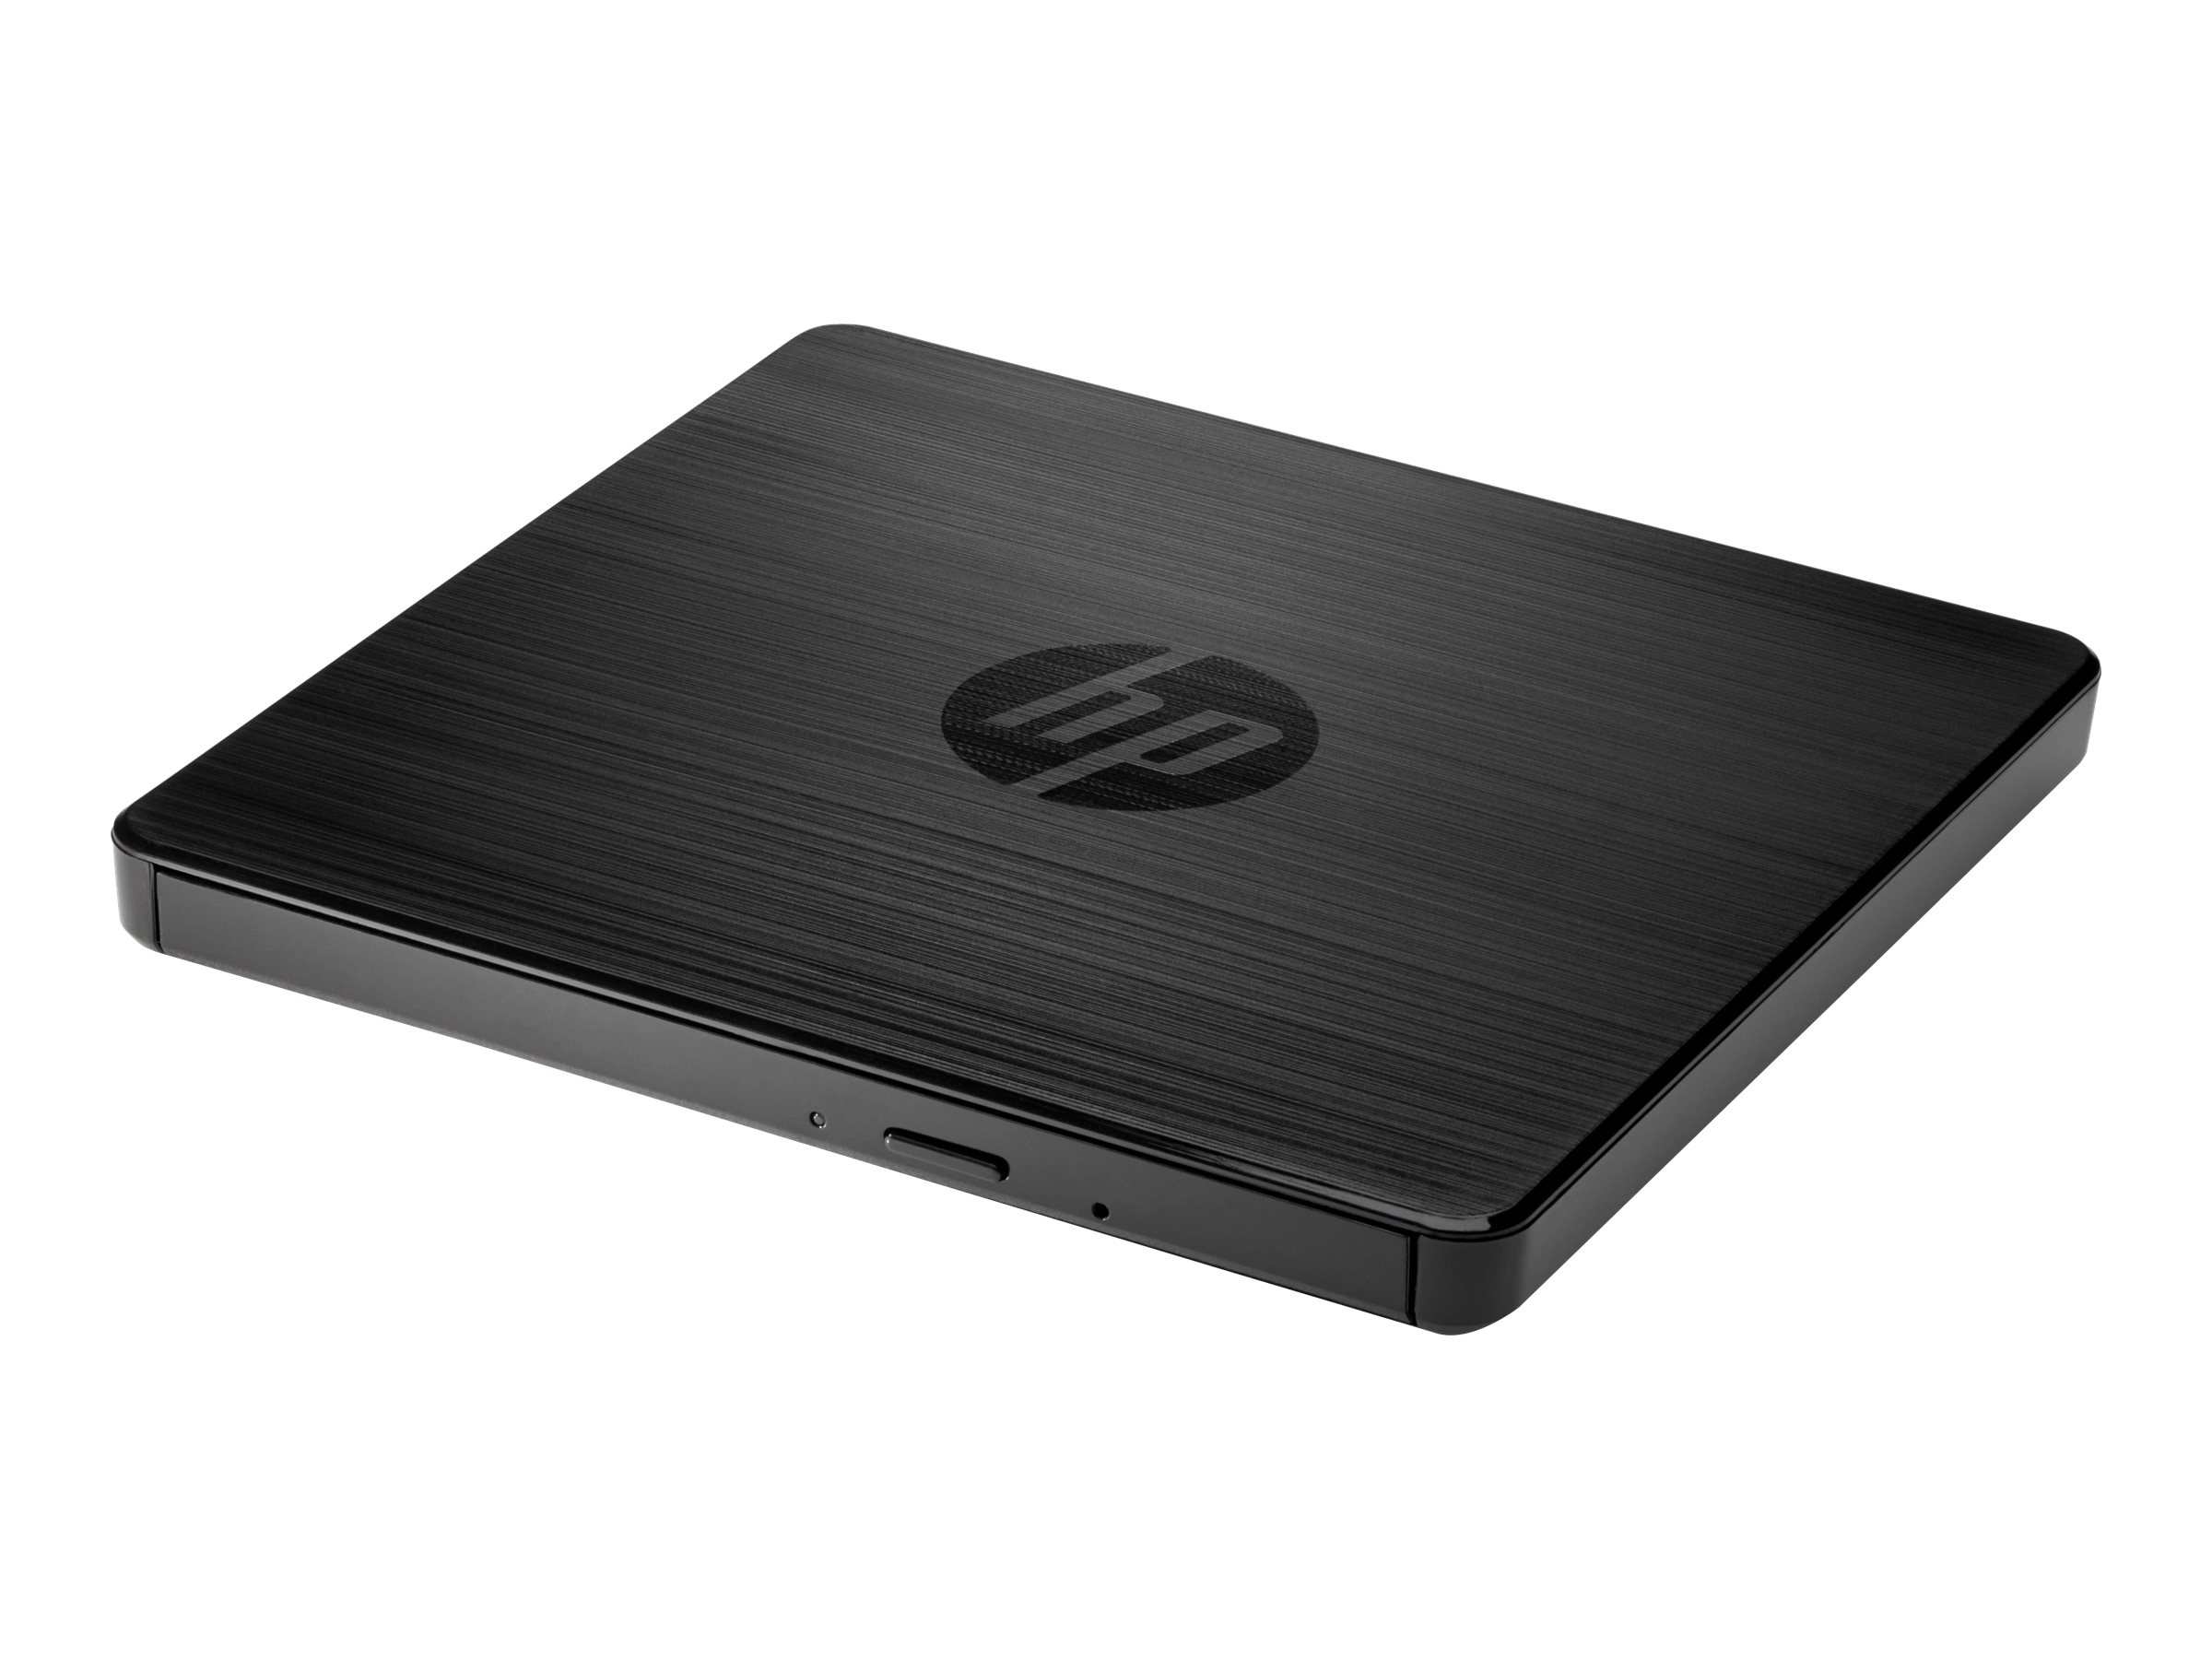 HP - Laufwerk - DVD-RW - USB - extern - für Workstation Z2 Mini G4 Entry, Z2 Mini G4 Performance